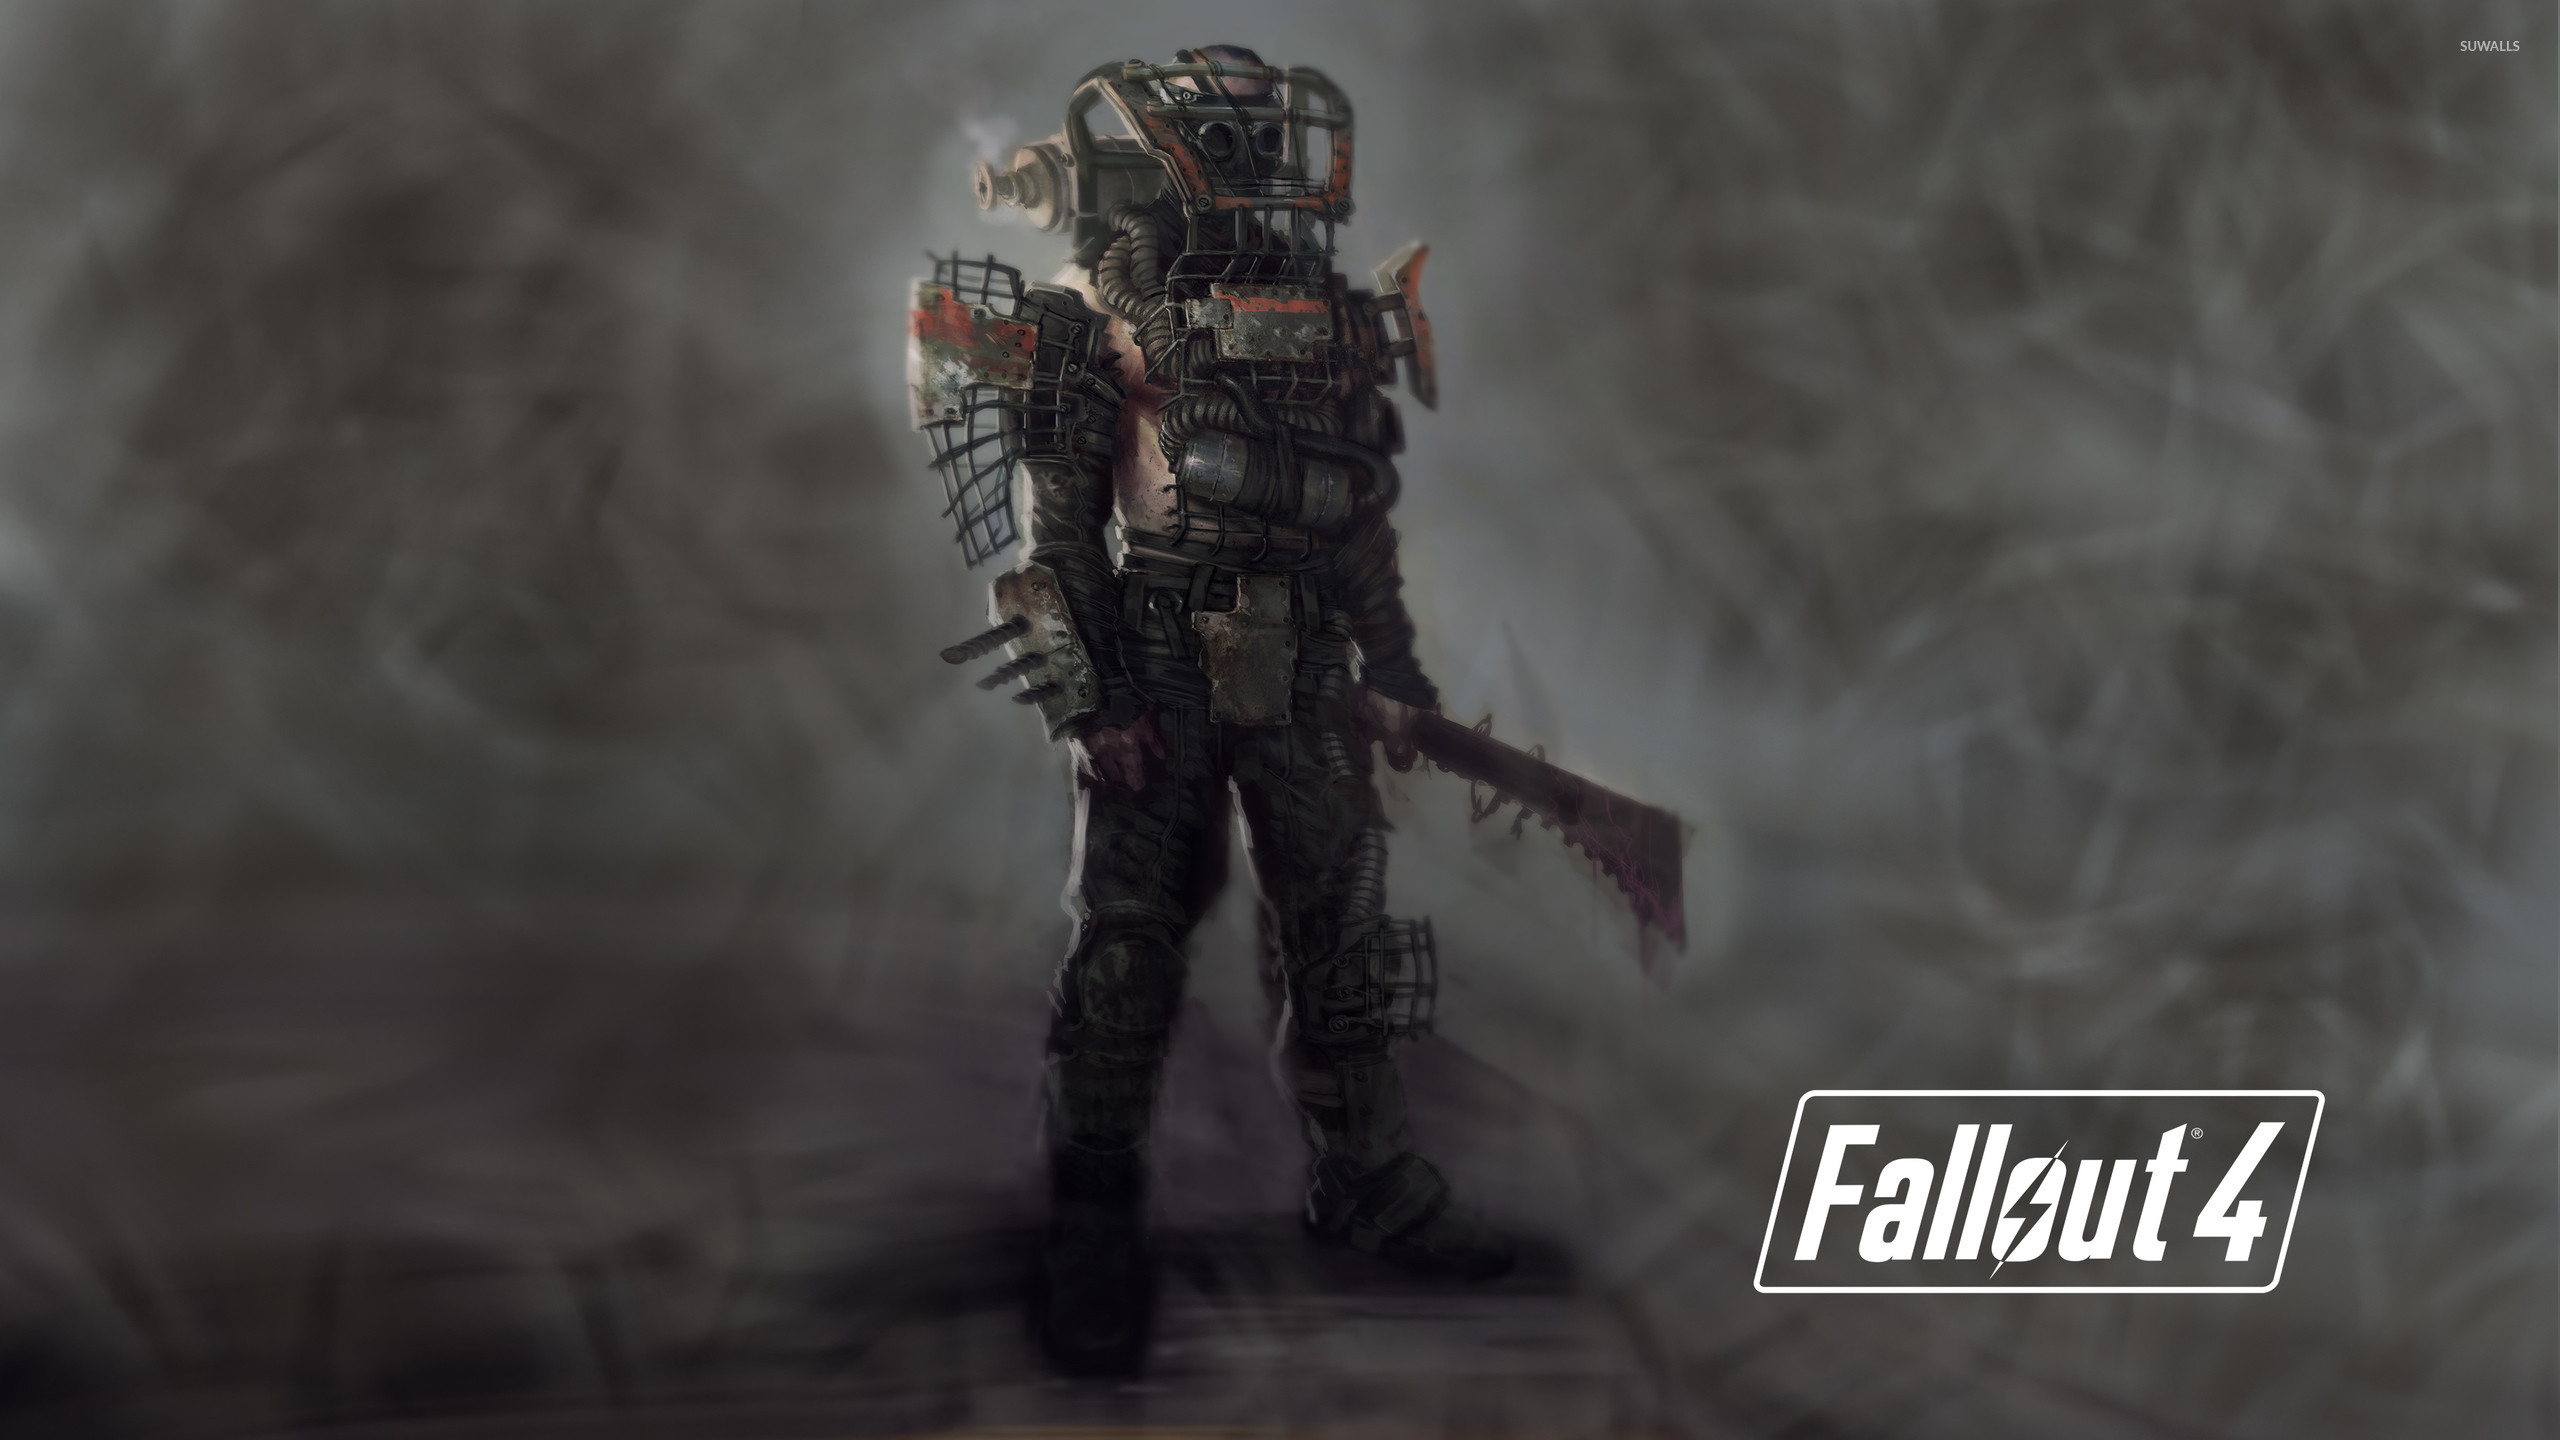 2560x1440 Raider in Fallout 4 wallpaper - Game wallpapers - #50130